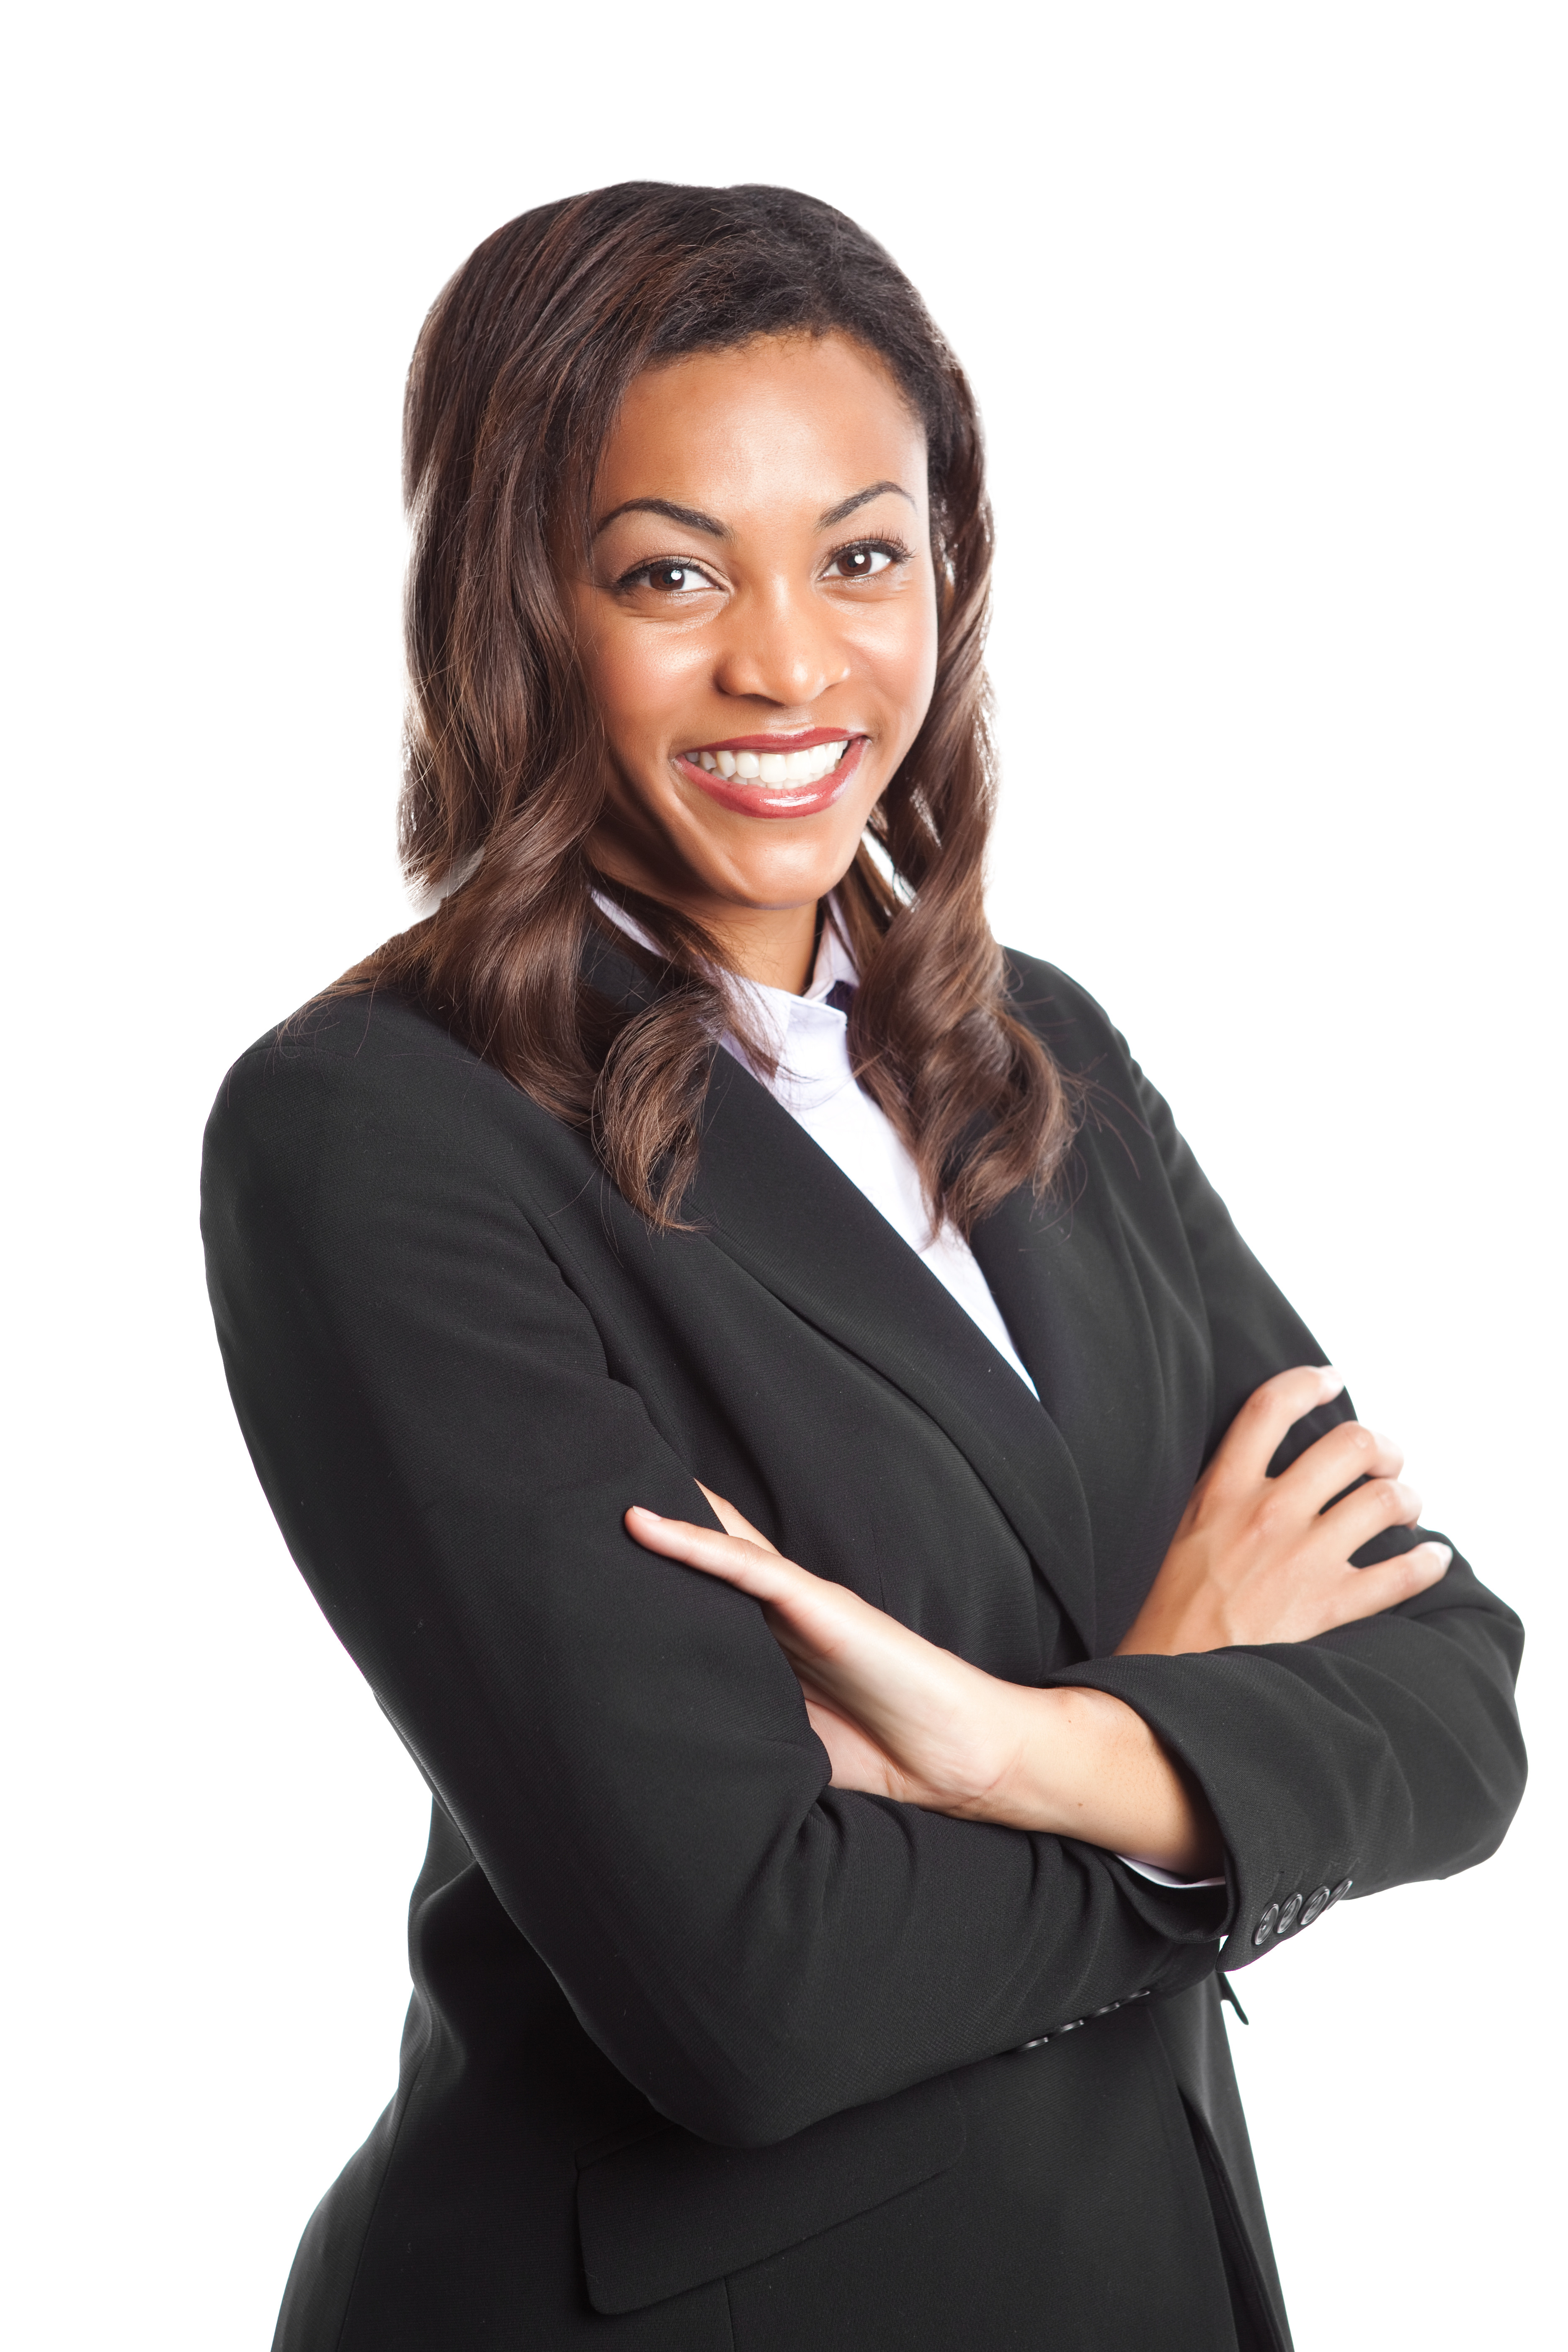 Black business woman png. Businessperson stock photography female